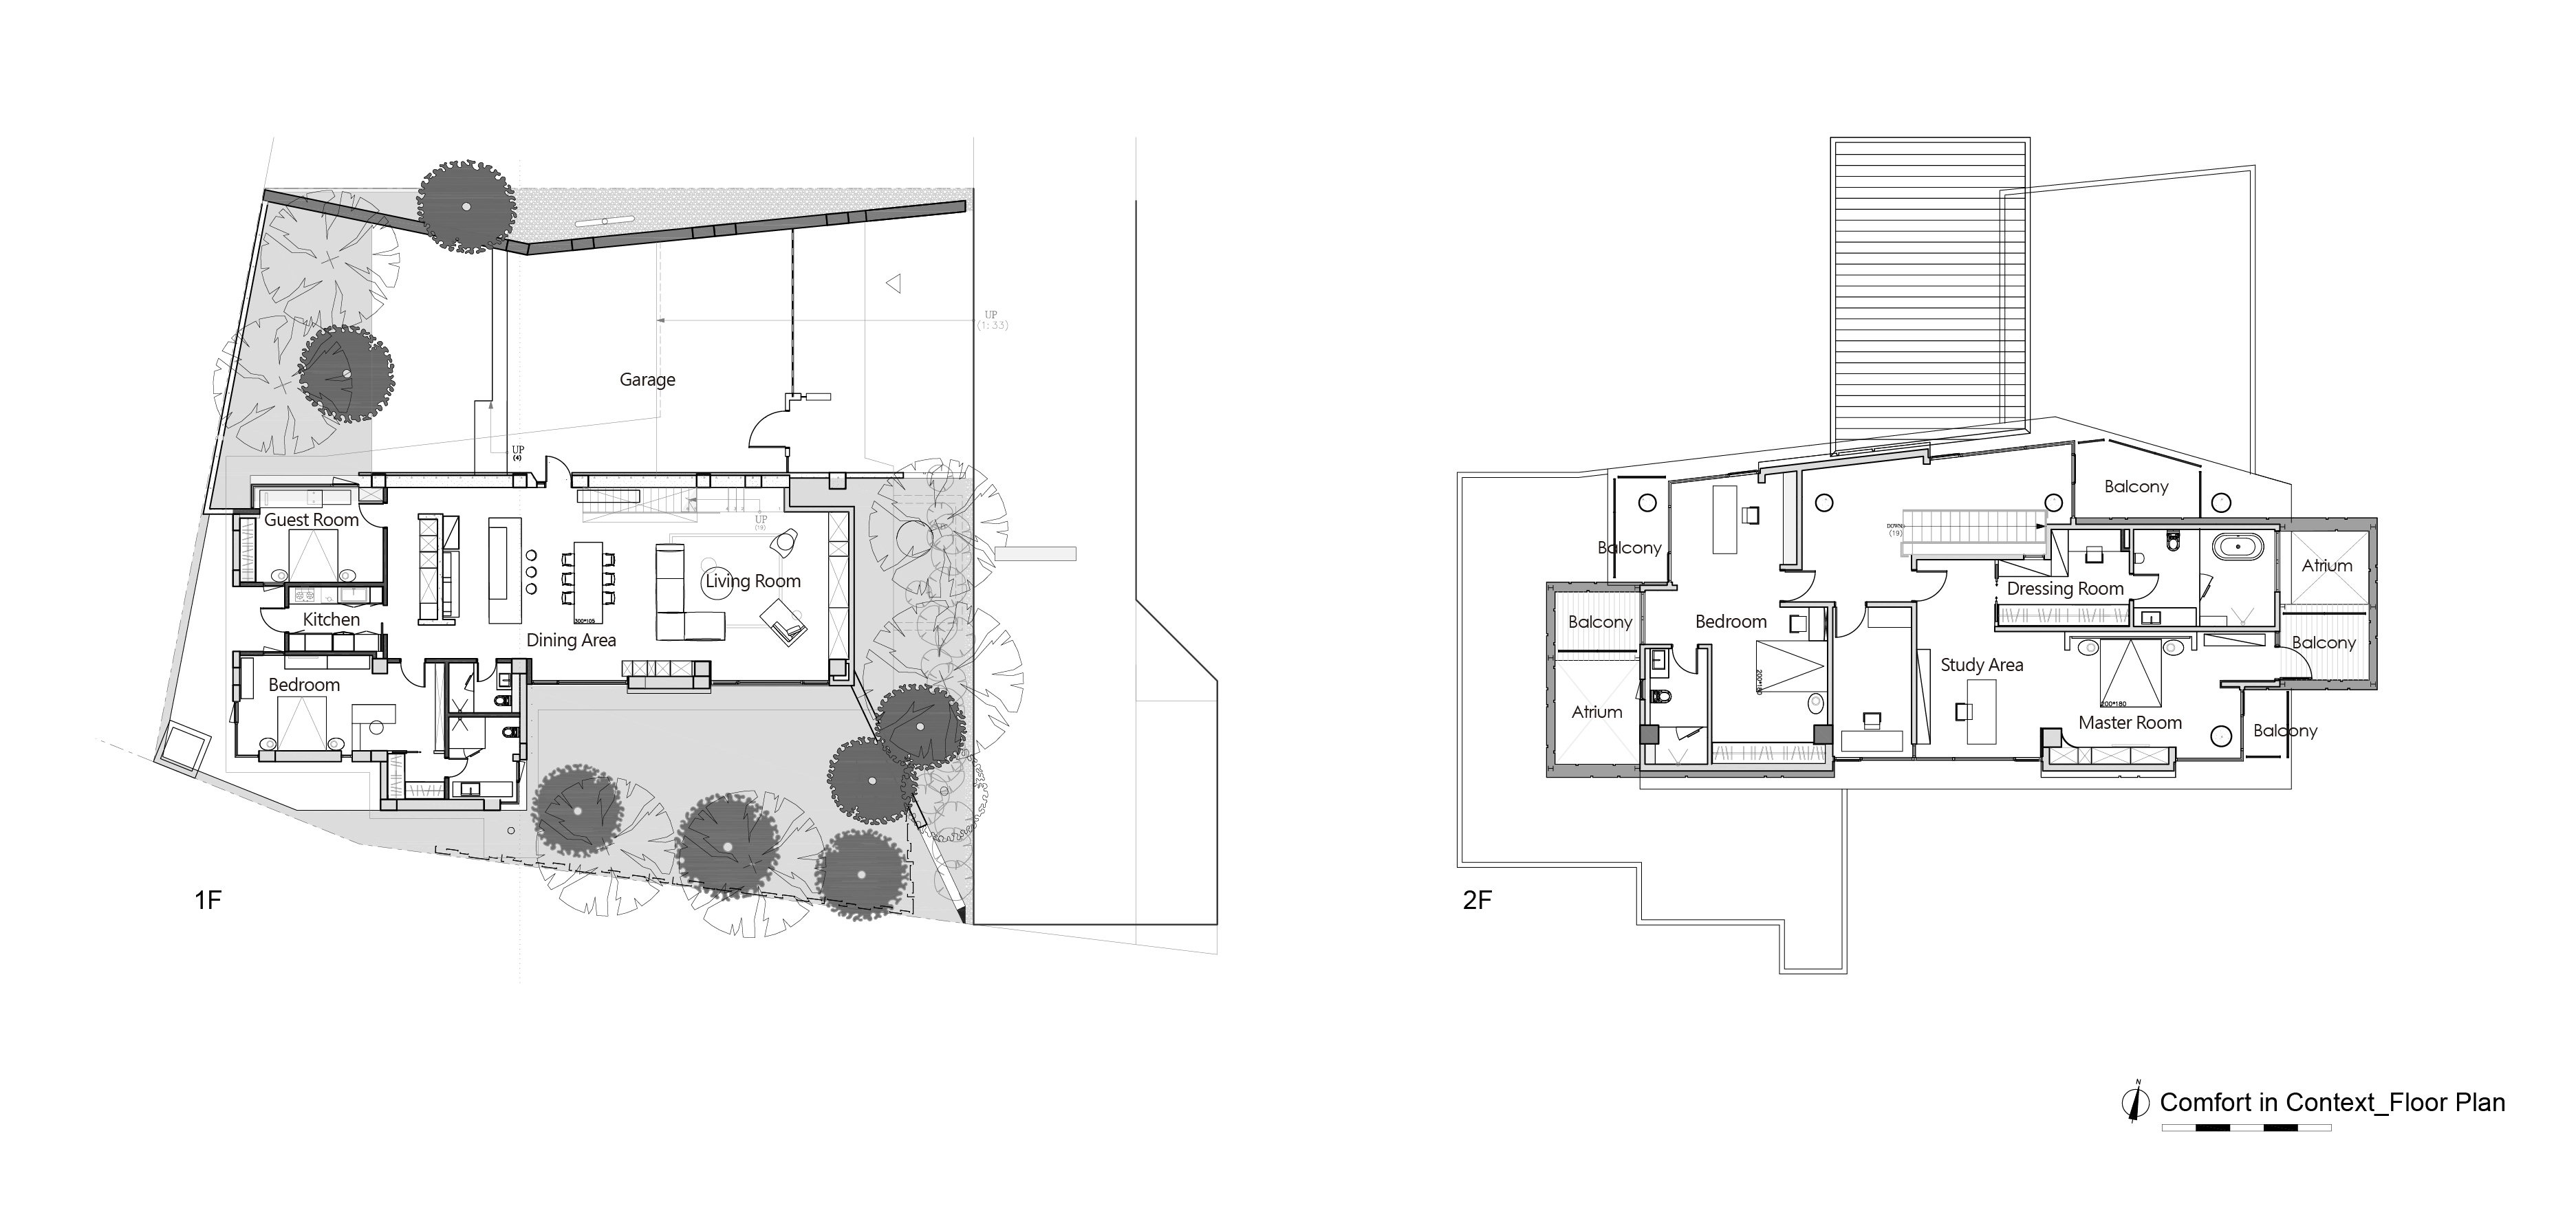 Comfort in Context_Floor Plans Chain10 Architecture & Interior Design Institute}